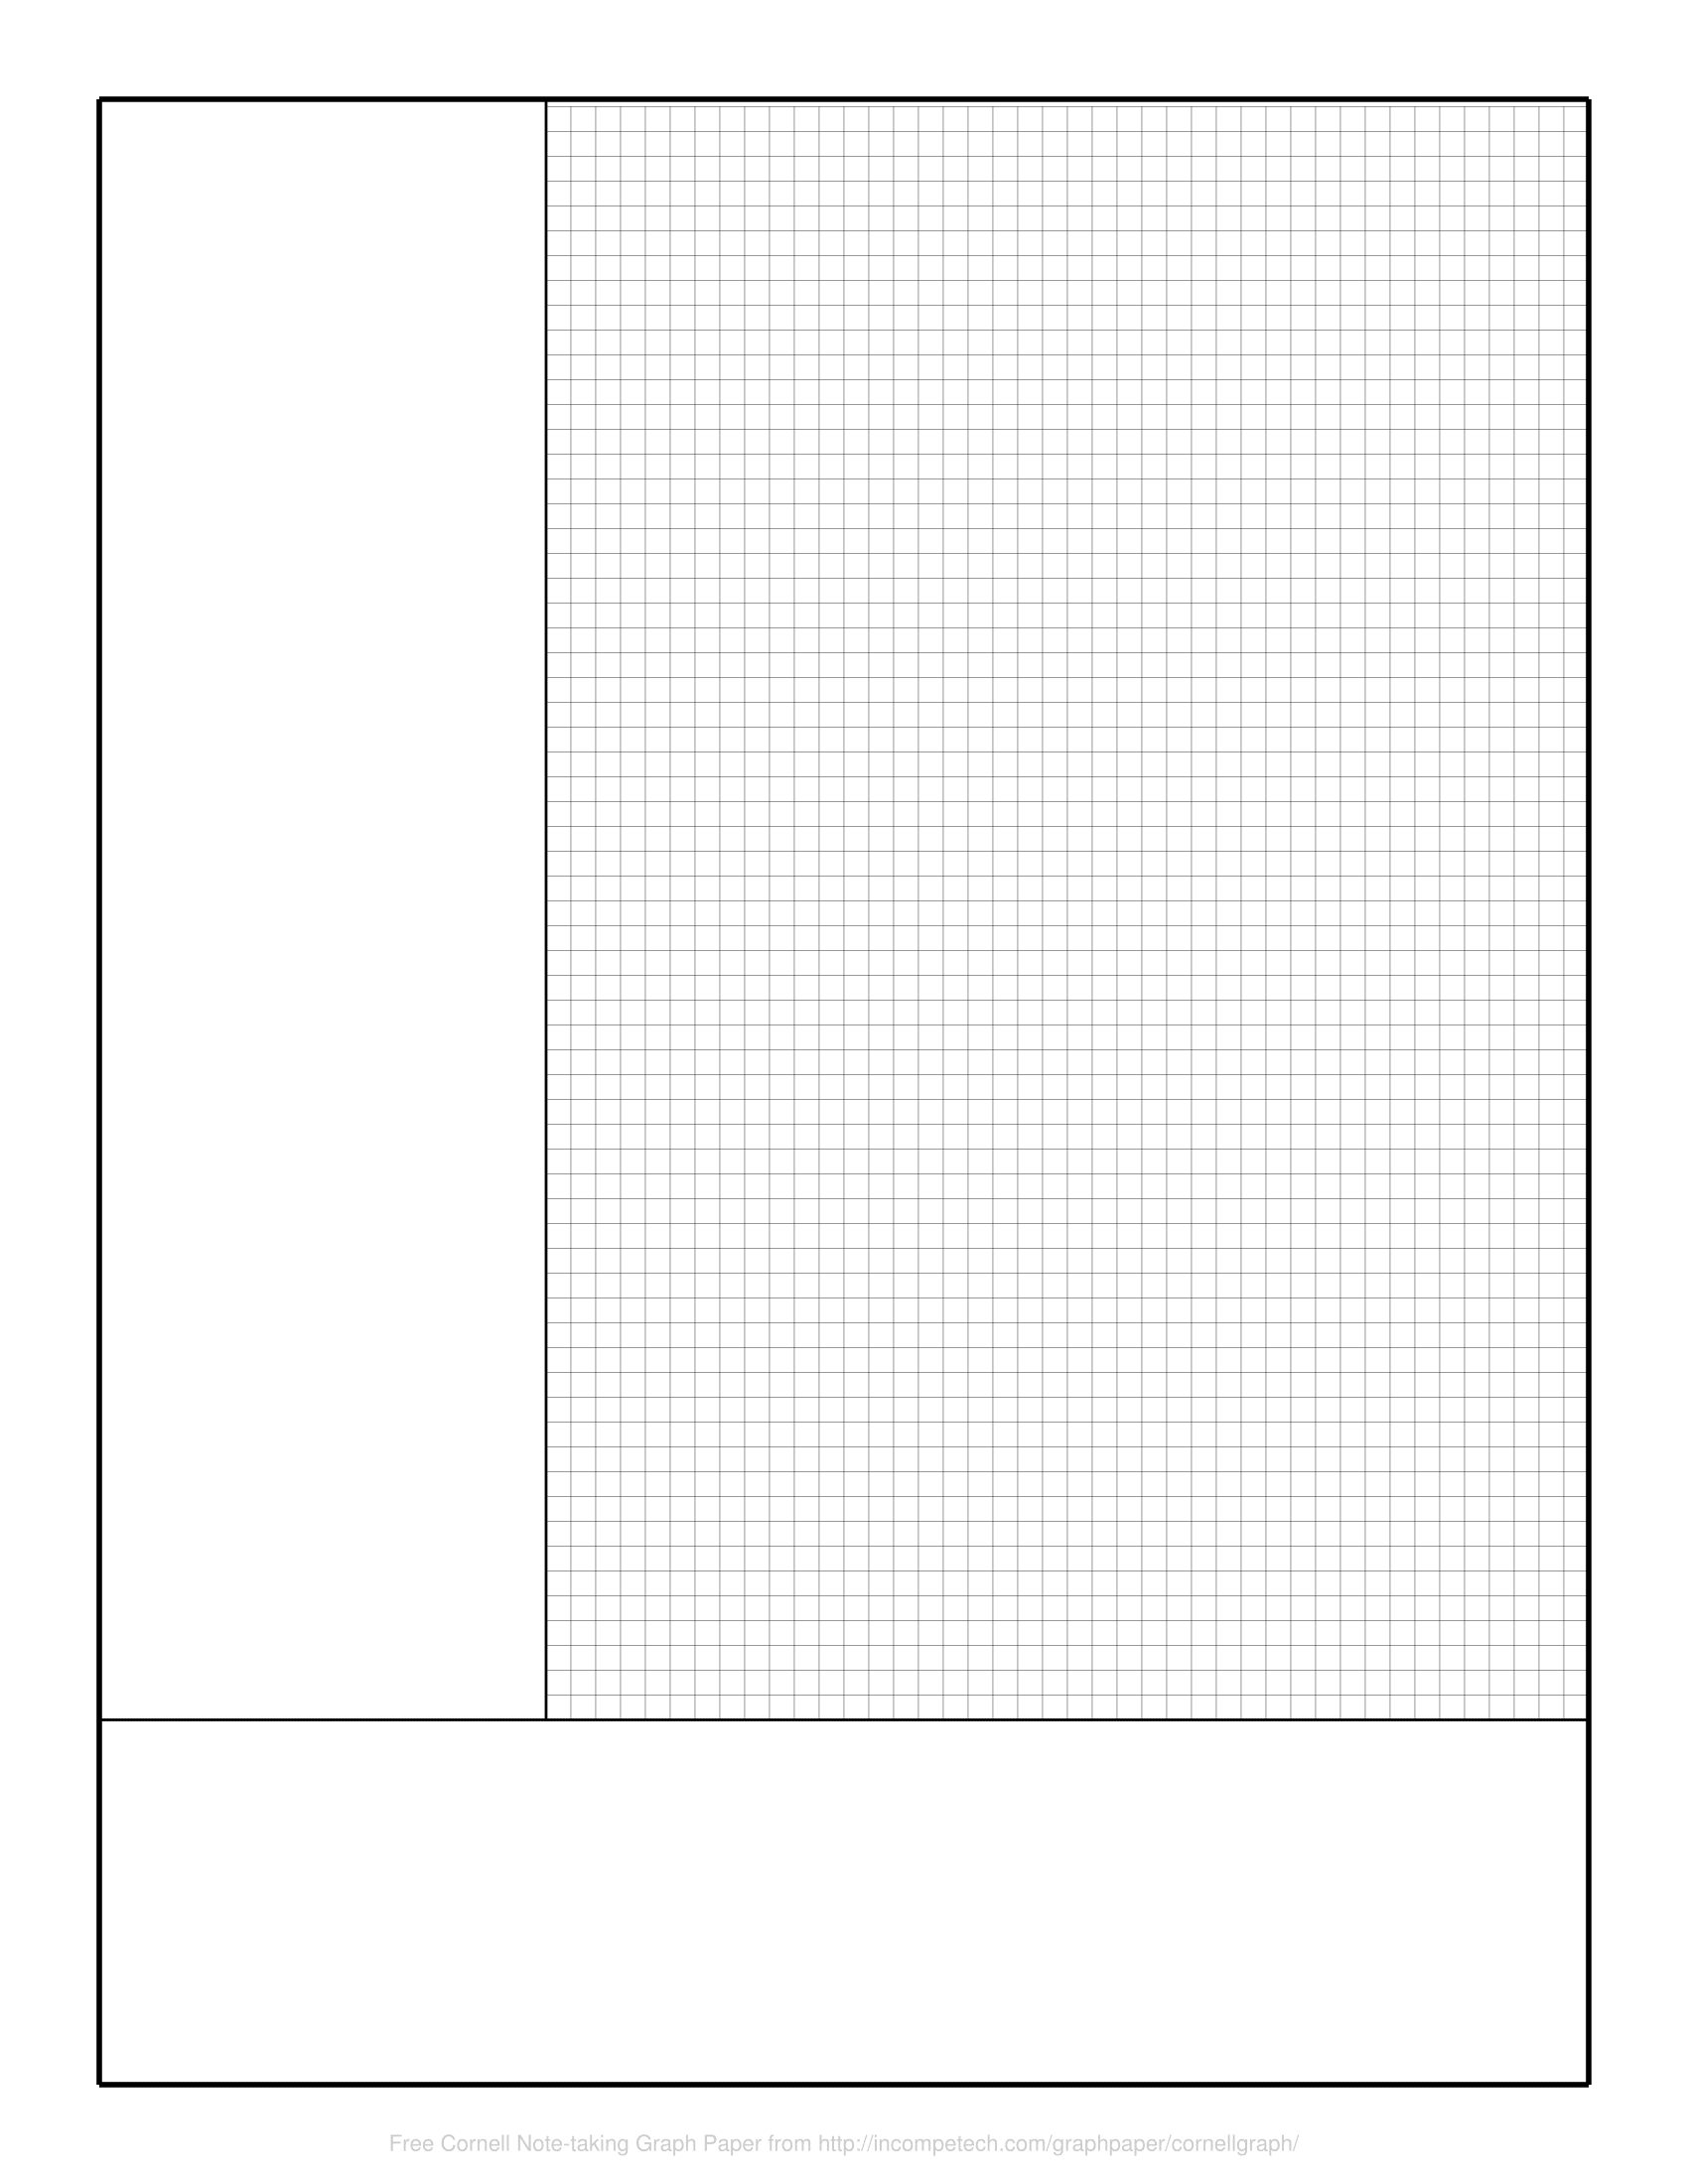 Template For Graph Paper from incompetech.com